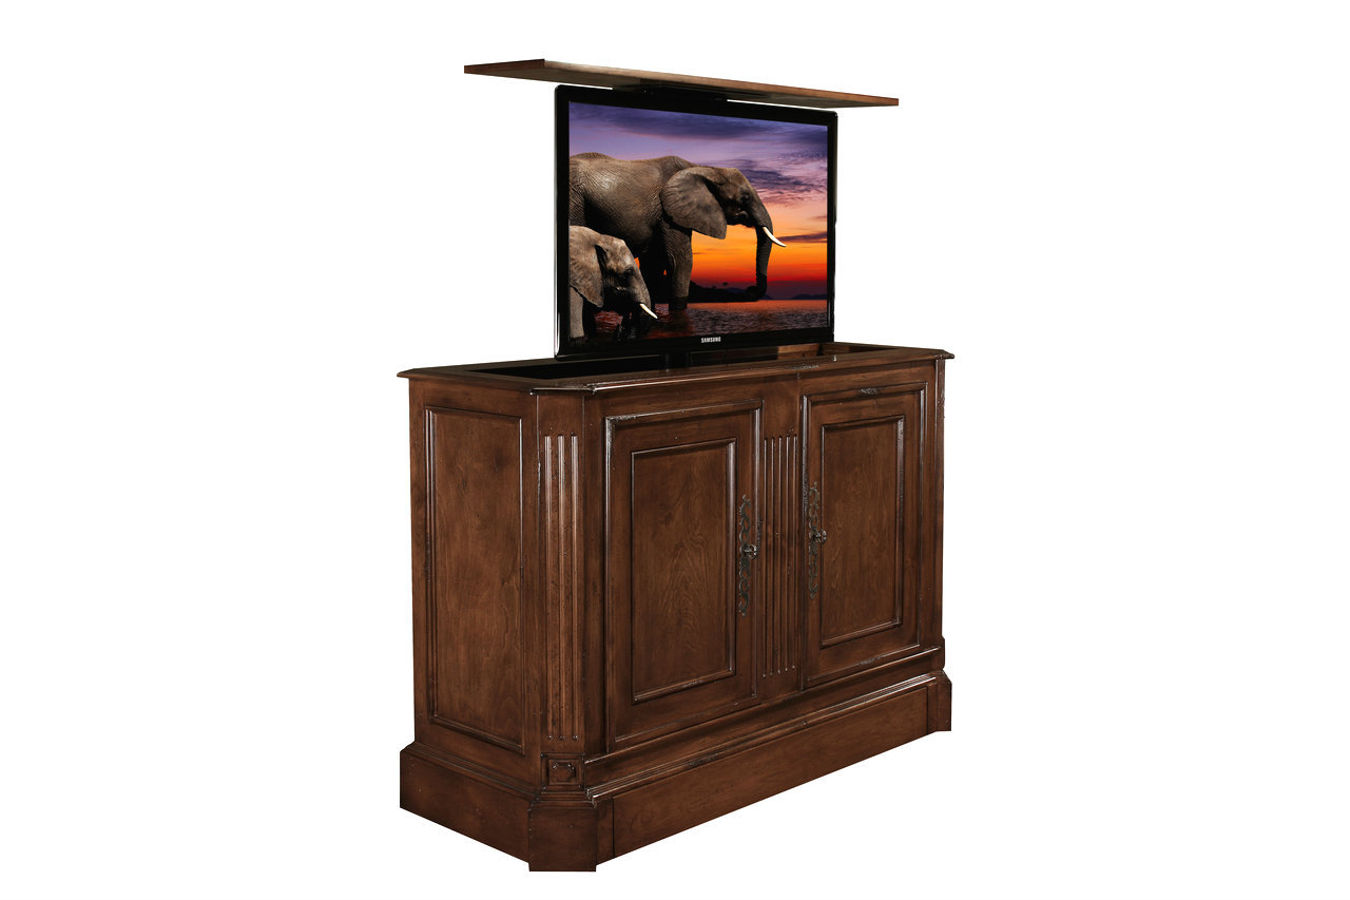 Sierra_TV_Lift_Cabinet_with_Antique_Caramel_finish._Built_by_Cabinet_Tronix__01